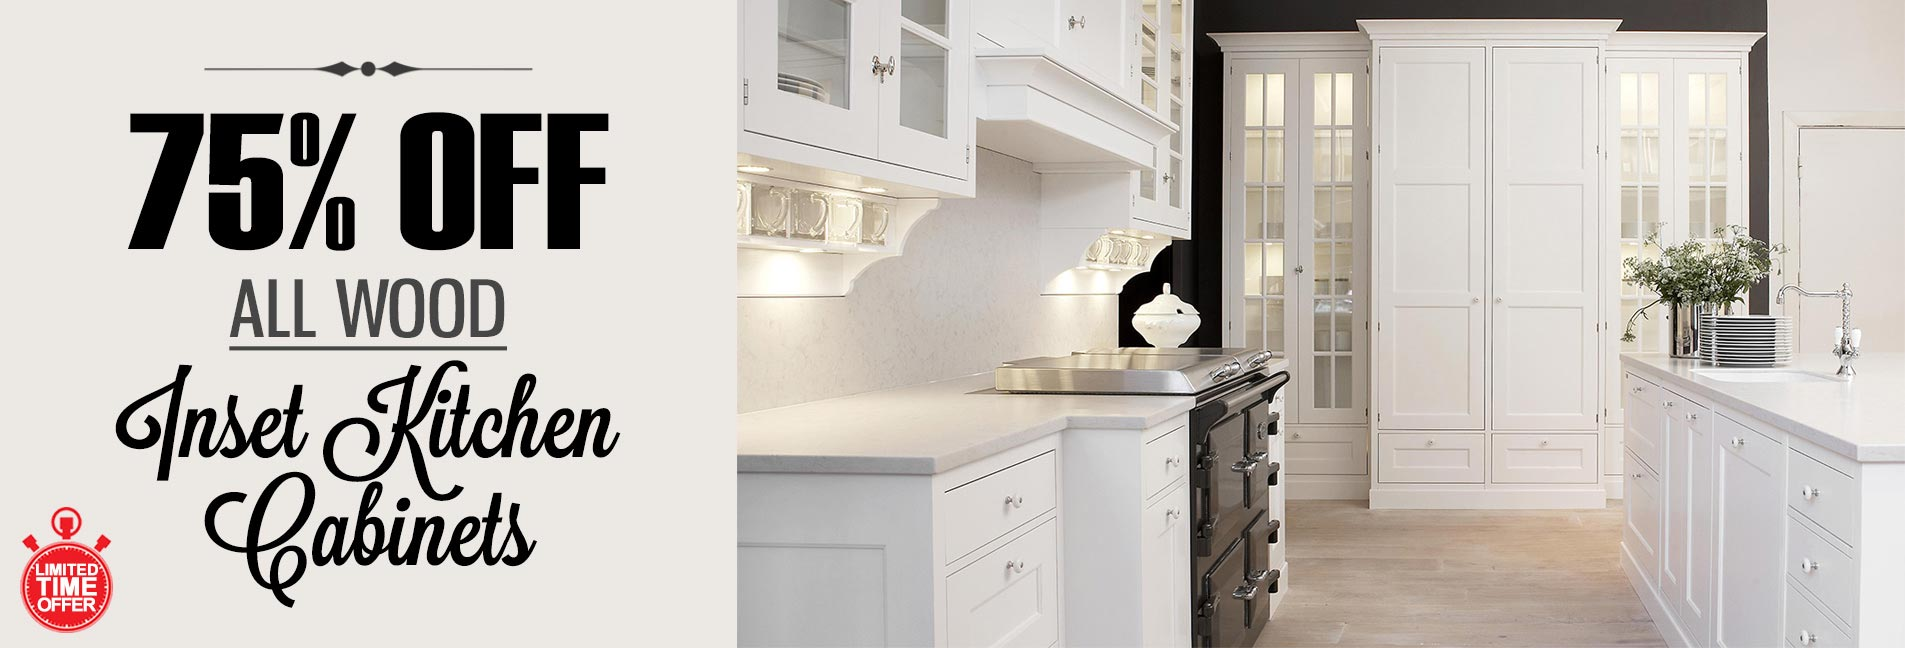 kitchen cabinets all-wood affordable kitchen cabinets wood kitchen